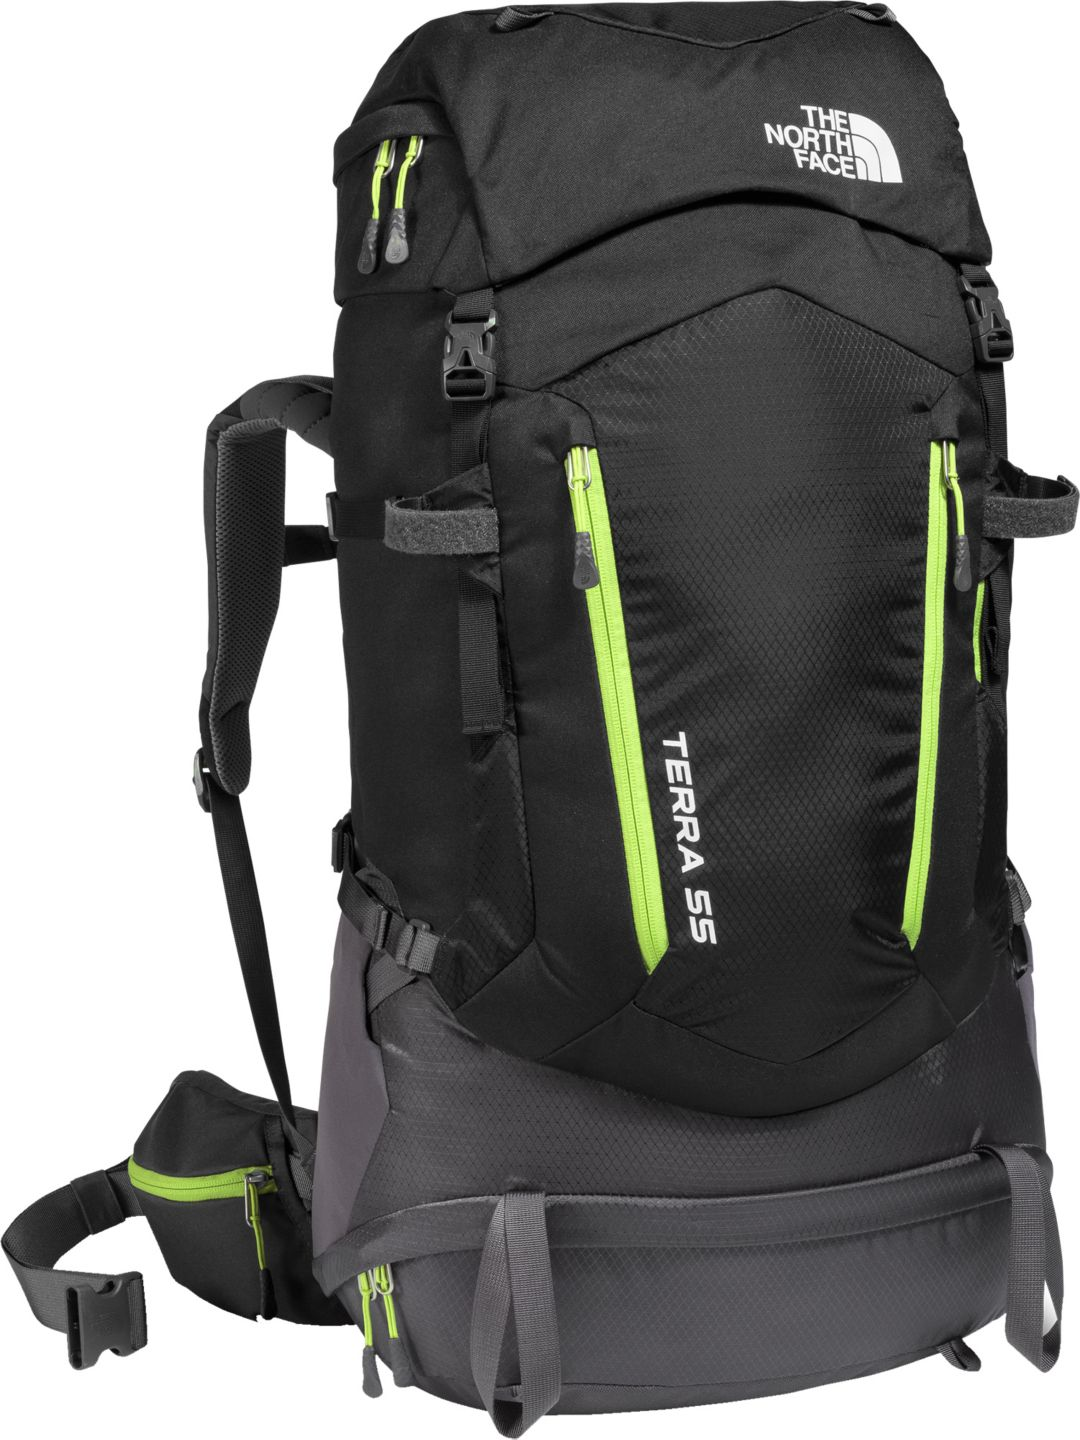 474192770 The North Face Youth Terra 55L Internal Frame Pack - Prior Season